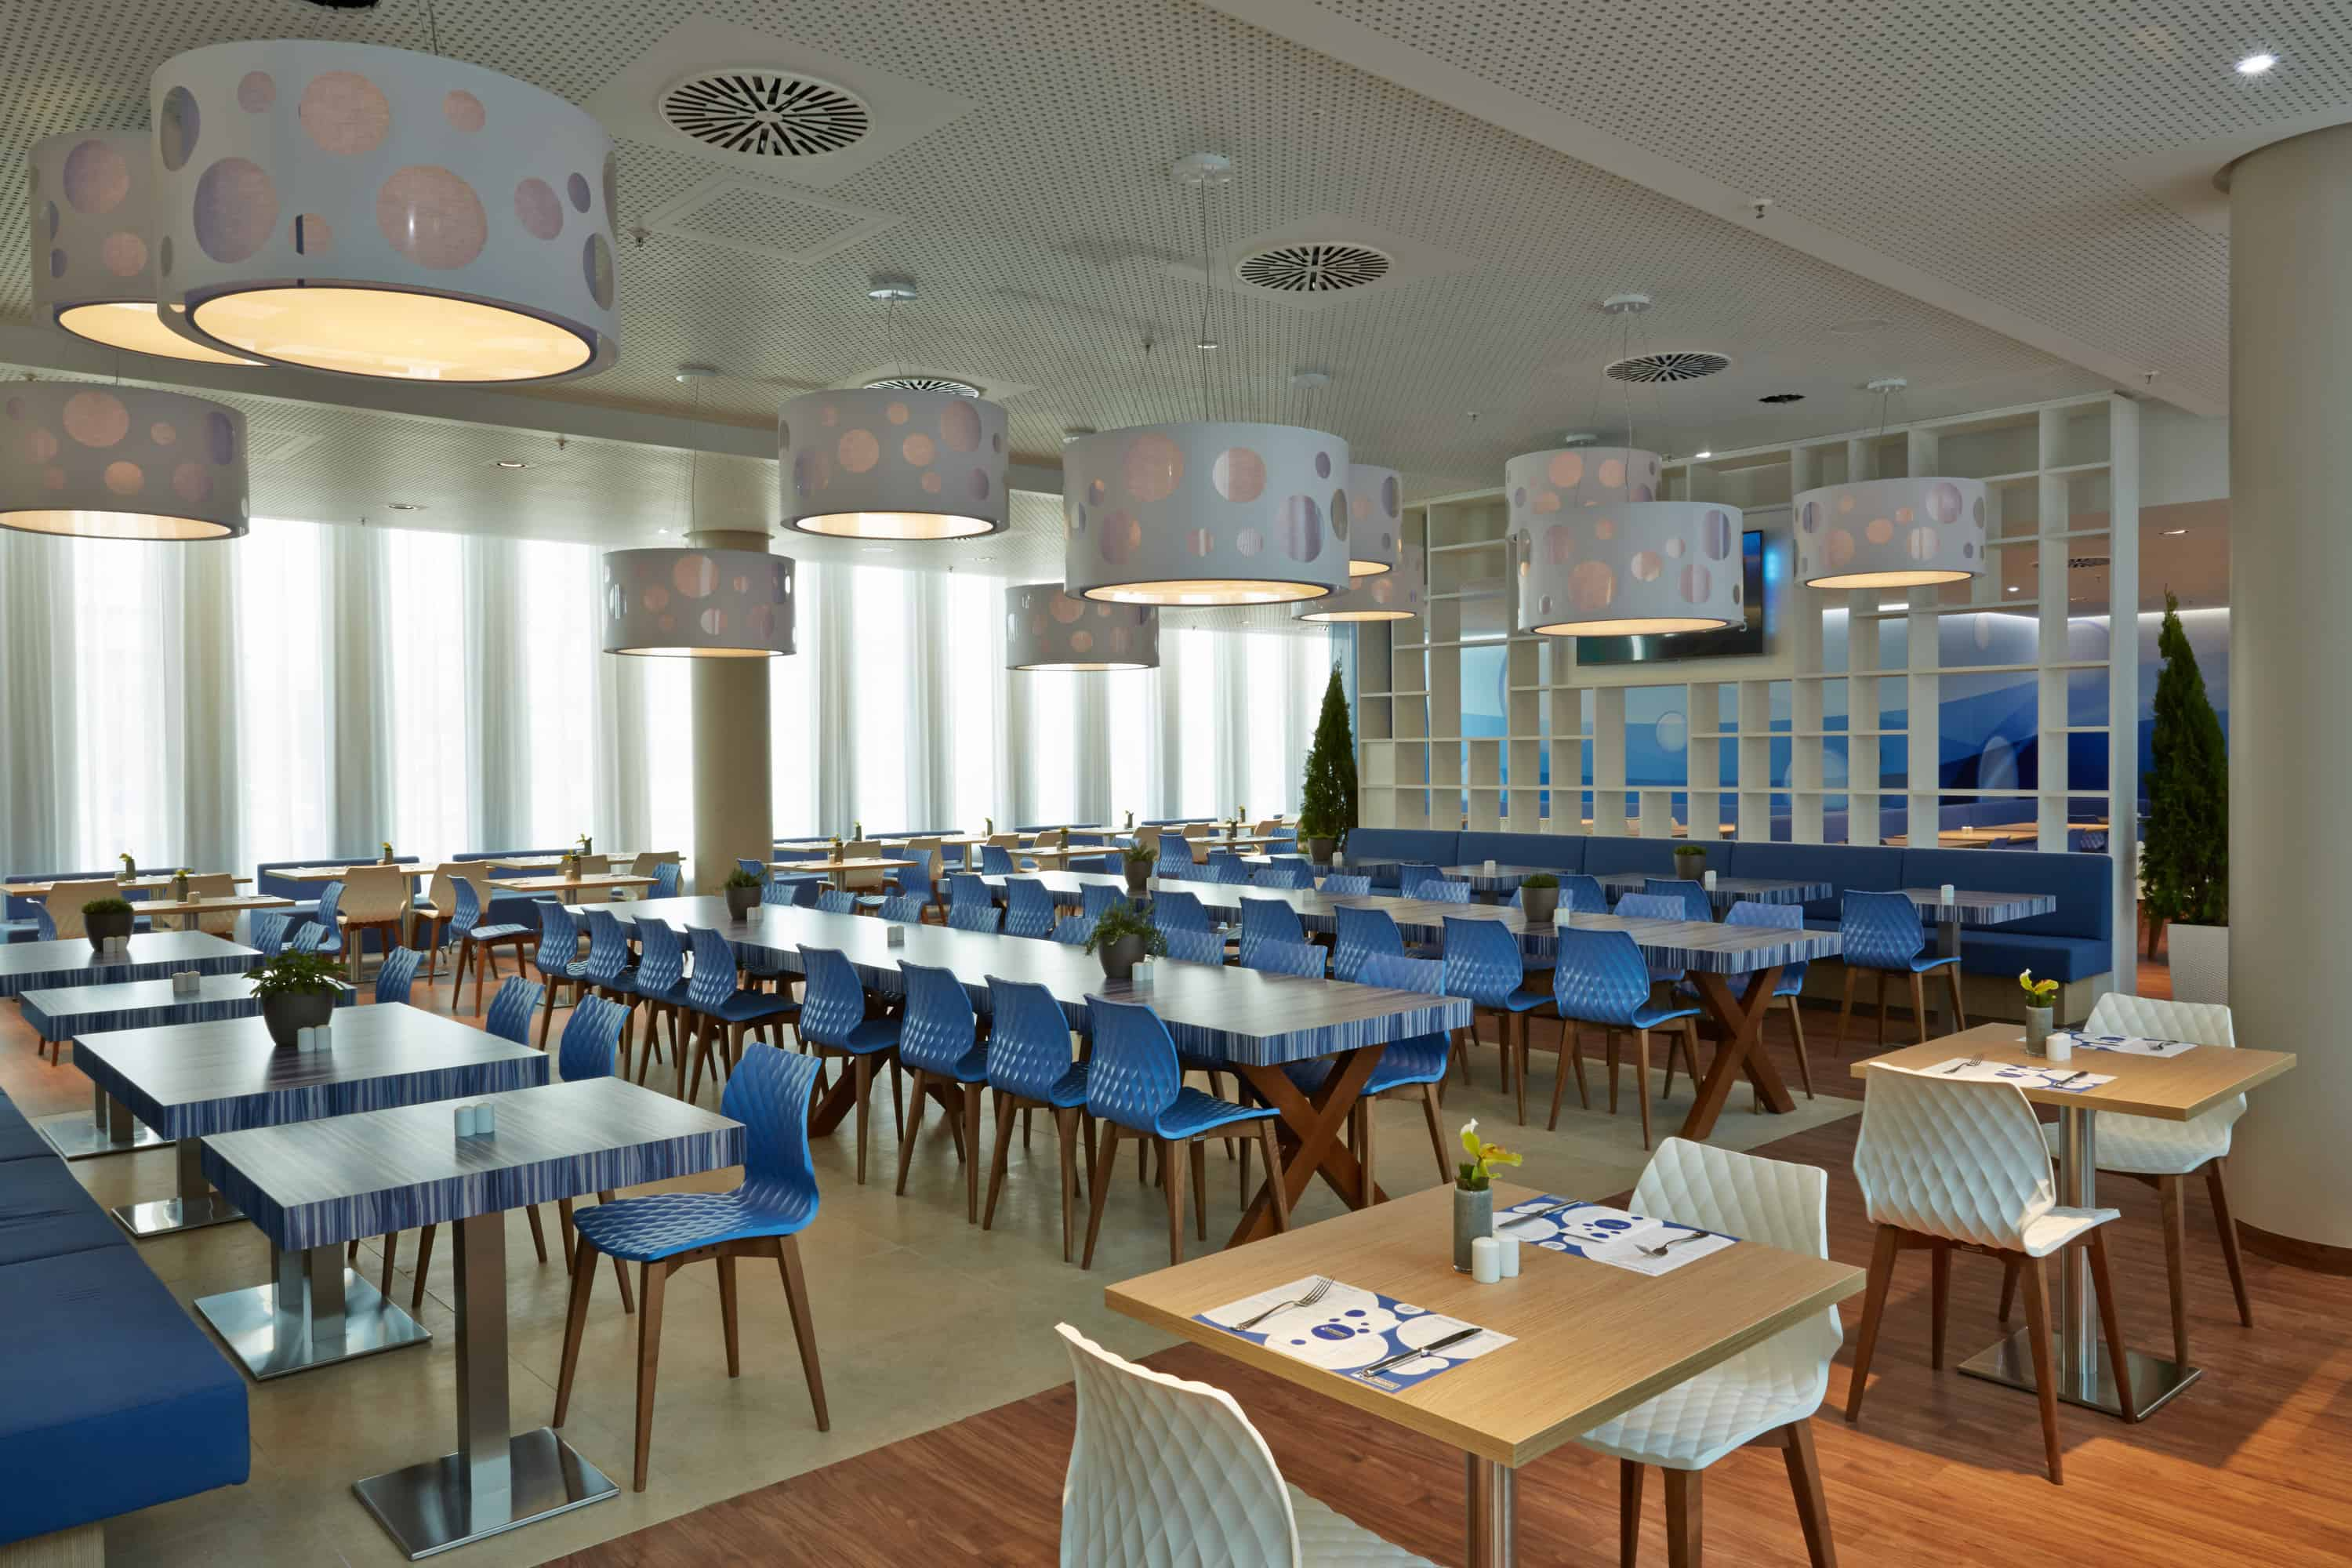 h-hotels_restaurant-01-h2-hotel-muenchen-messe_L (max. 3000px) _b4aa0e12